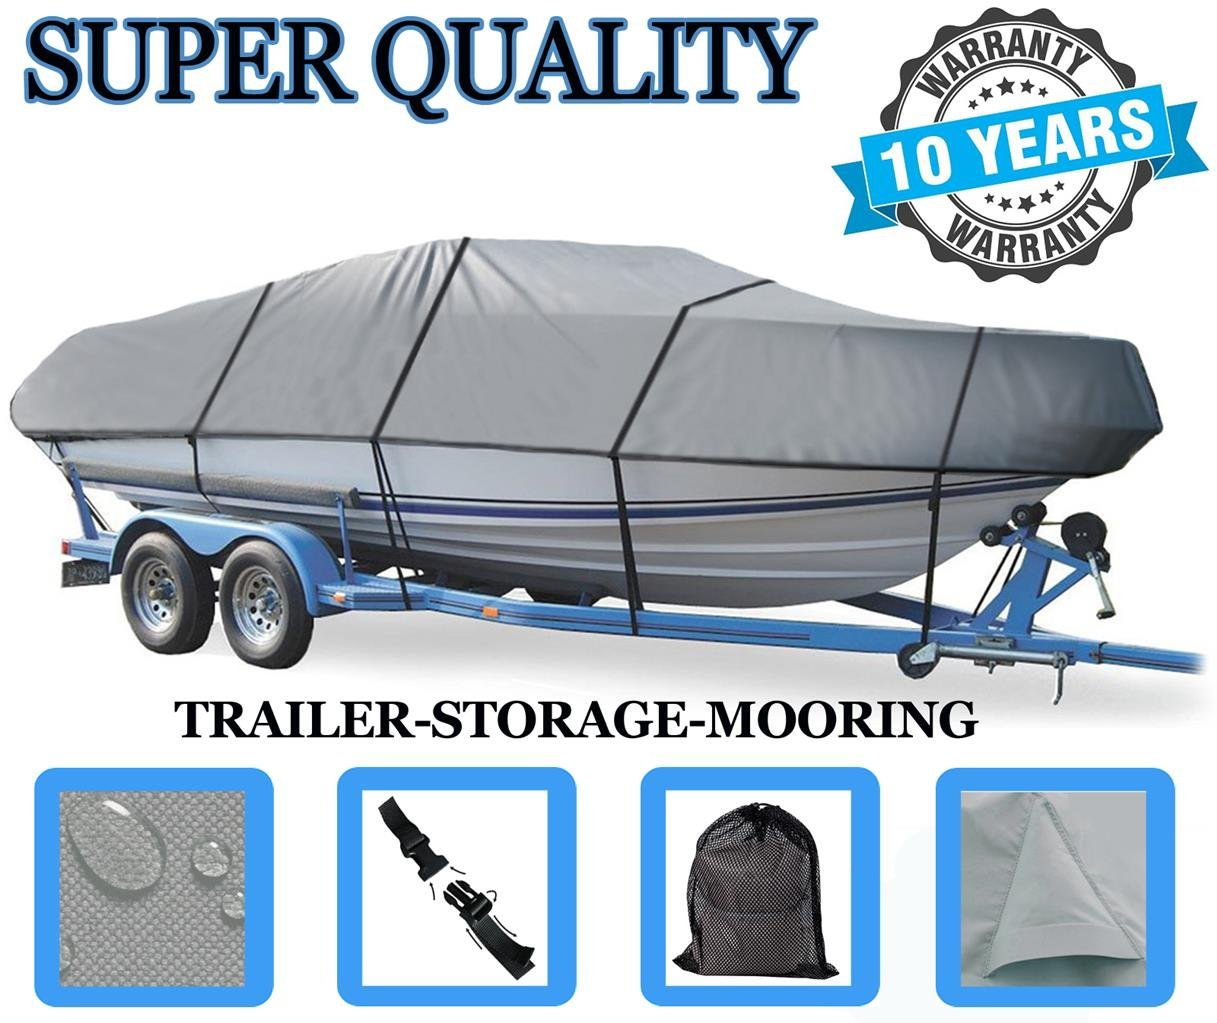 BOAT COVER FOR MASTERCRAFT 225 MARISTAR / 225 VRS 93-1997 Heavy-Duty Great Quality